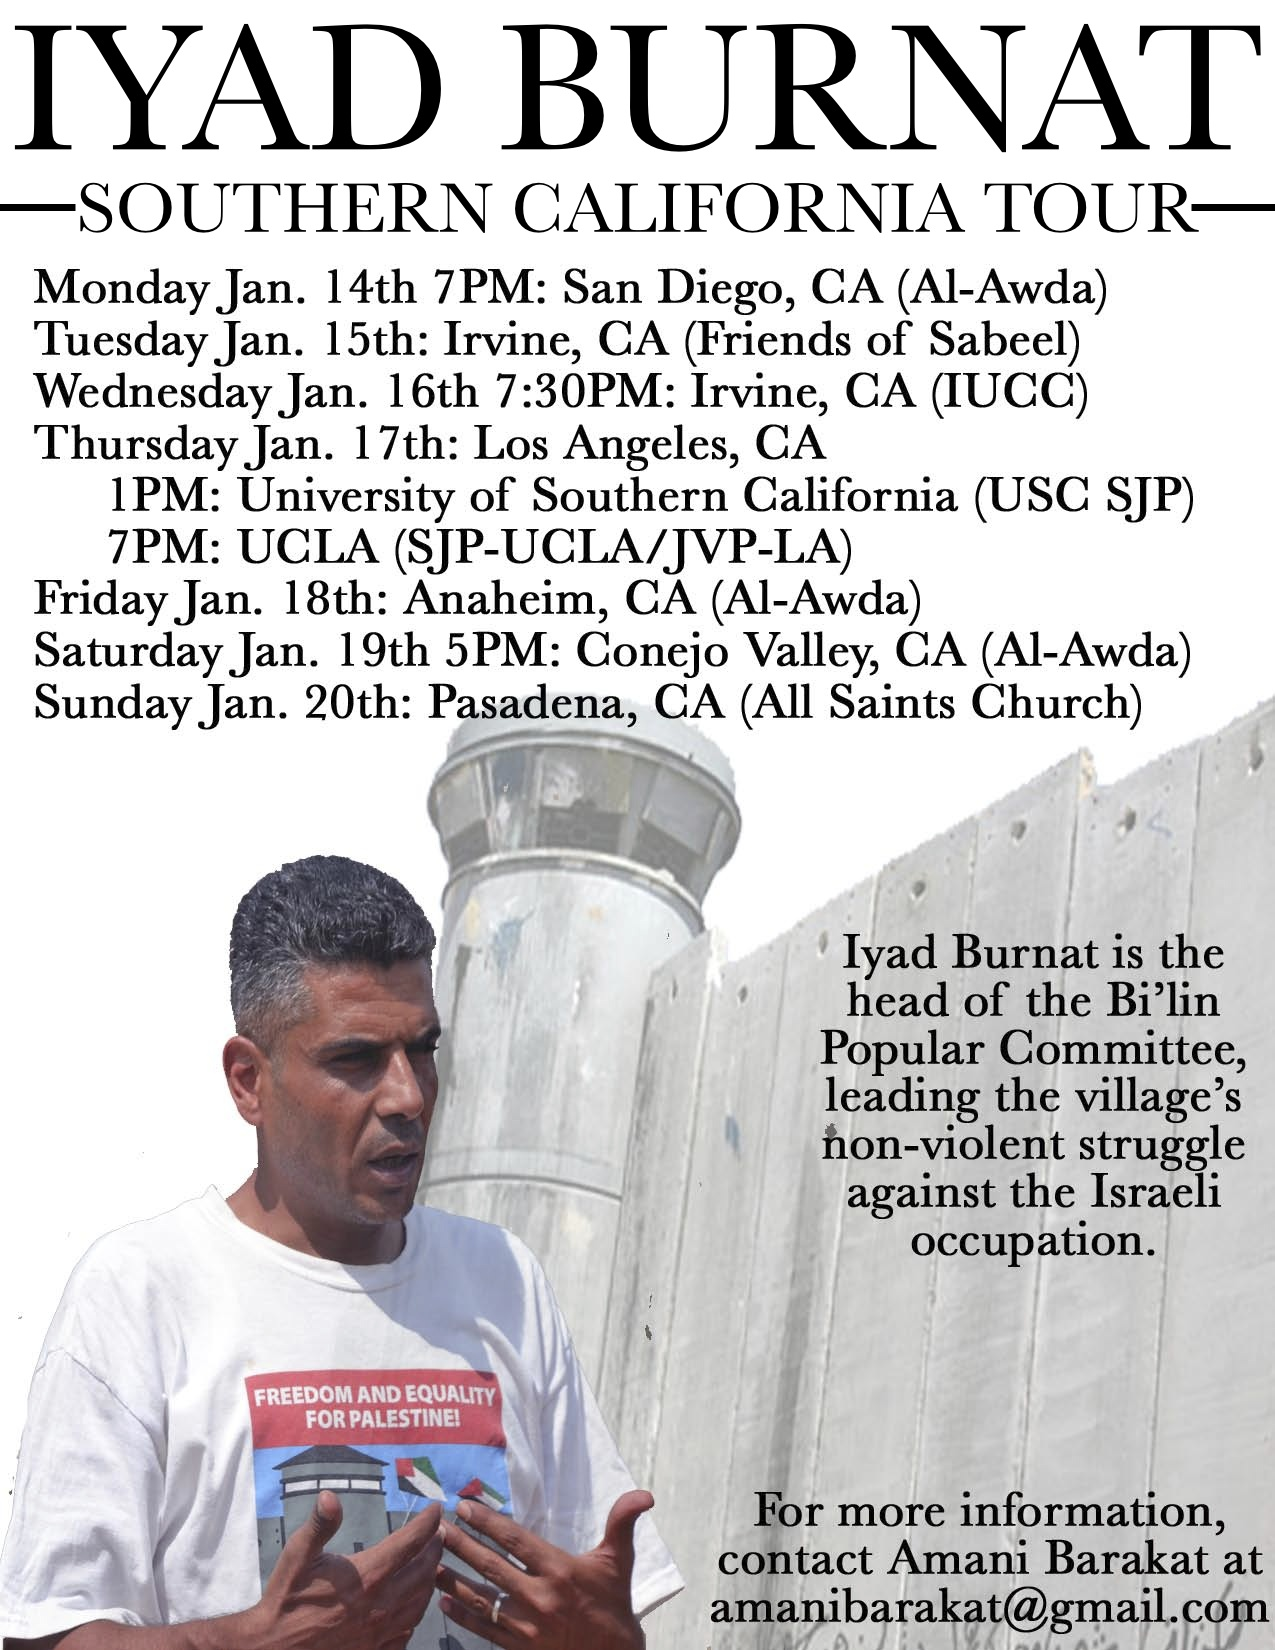 Iyad Burnat Southern California Tour